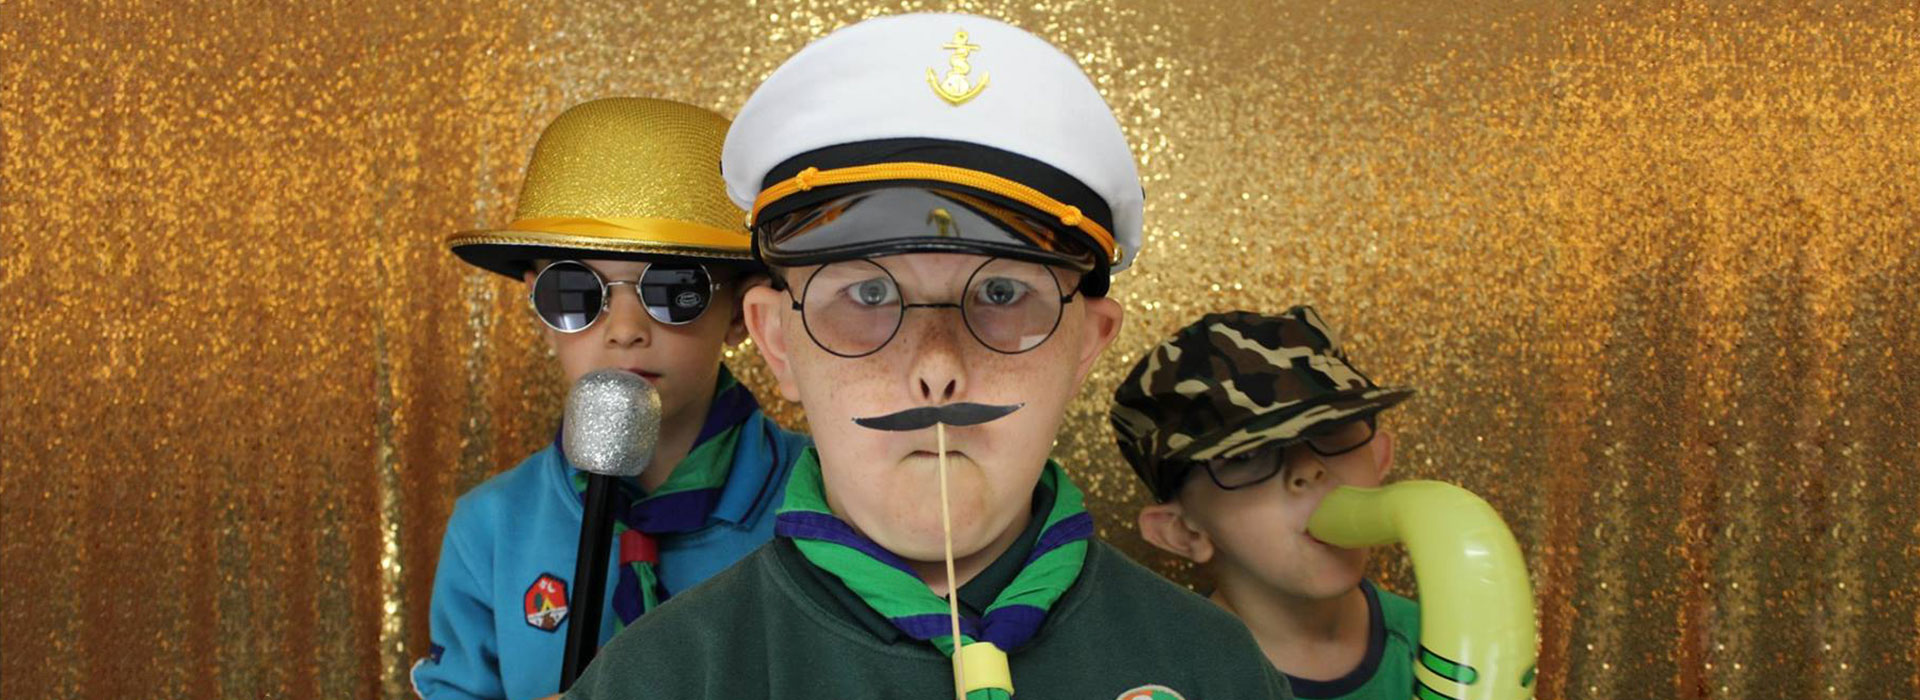 Photo Booth perfect for Kids Events including Birthday Parties